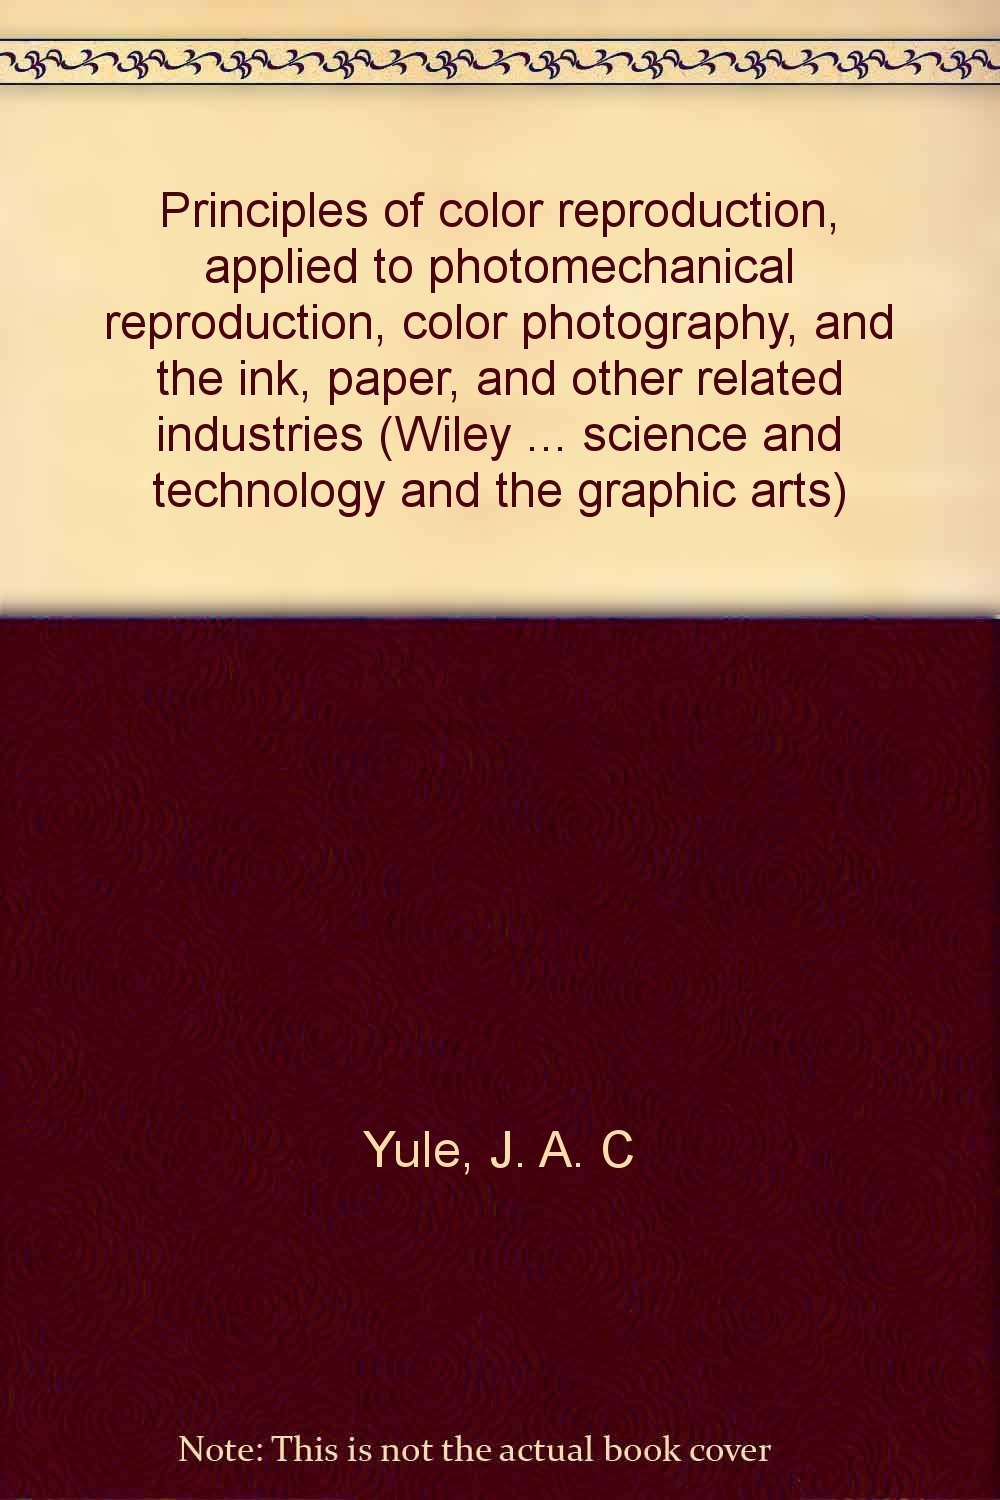 Principles of color reproduction, applied to photomechanical reproduction, color photography, and the ink, paper, and other related industries (Wiley ... science and technology and the graphic arts)